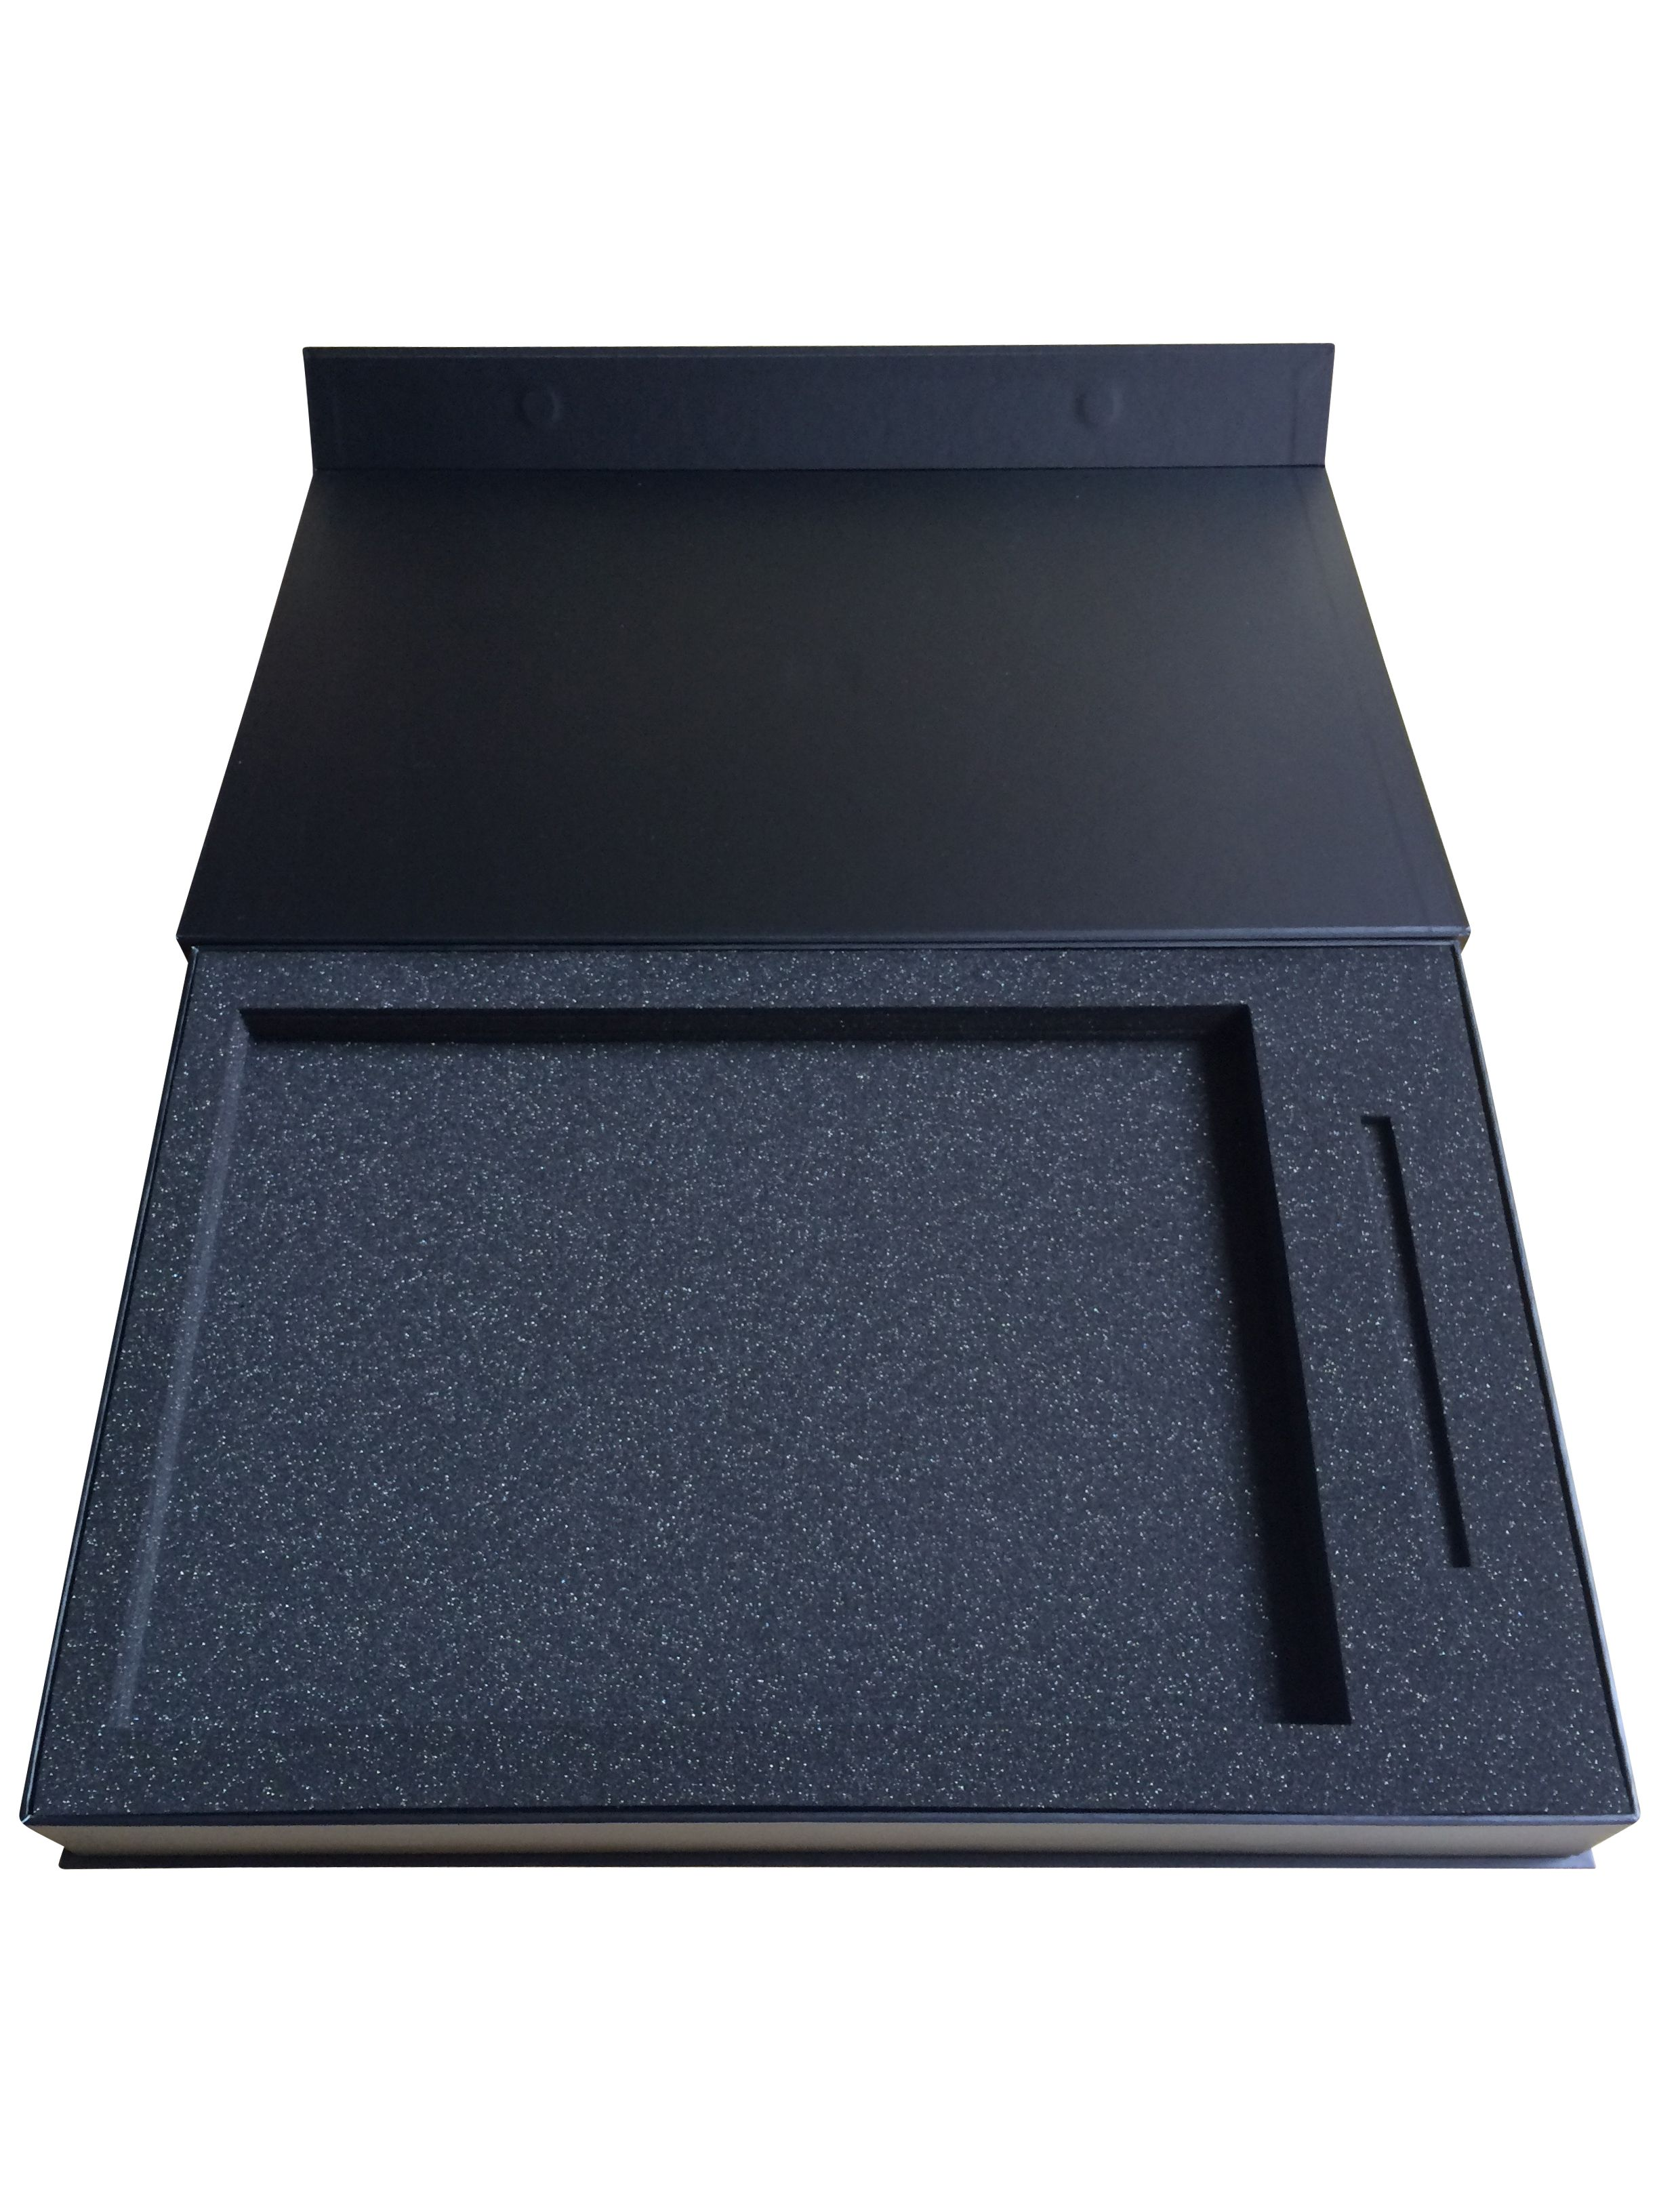 Rigid box with magnetic close with custom cut foam insert for High end client gifts